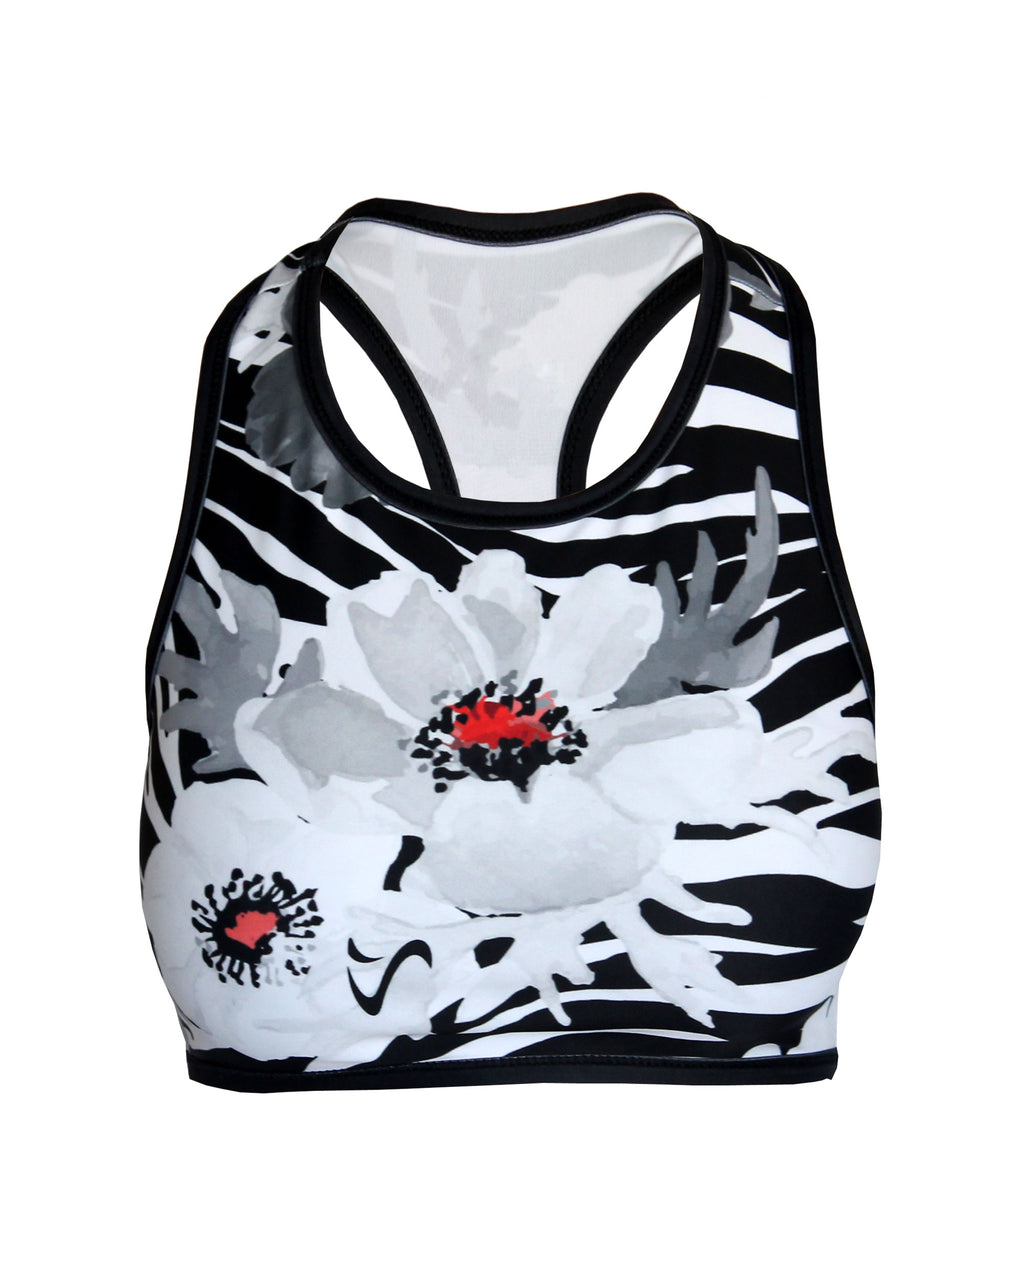 Vivolicious WILD POPPY Interval Split Training Bra